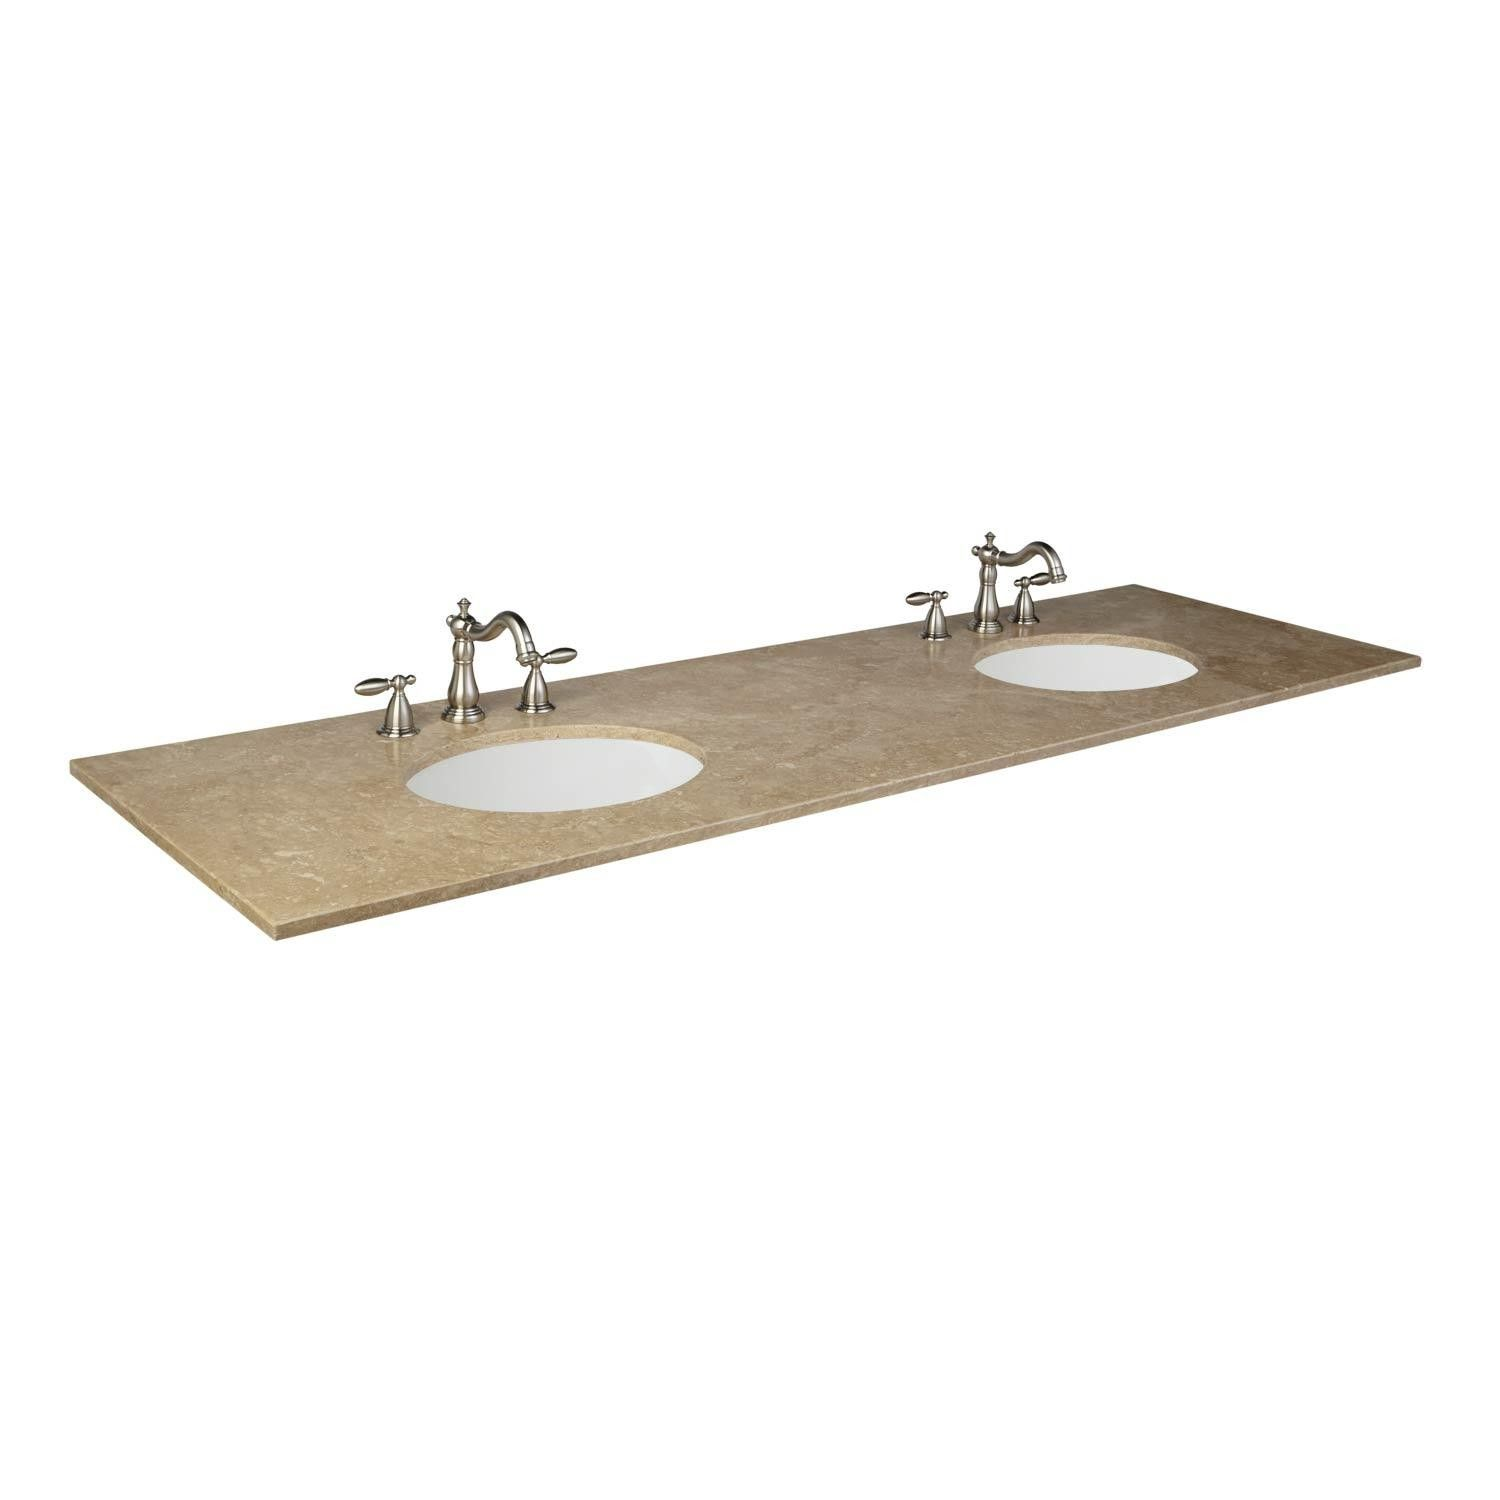 73 X 22 Travertine Vanity Top With Double Undermount Sinks With